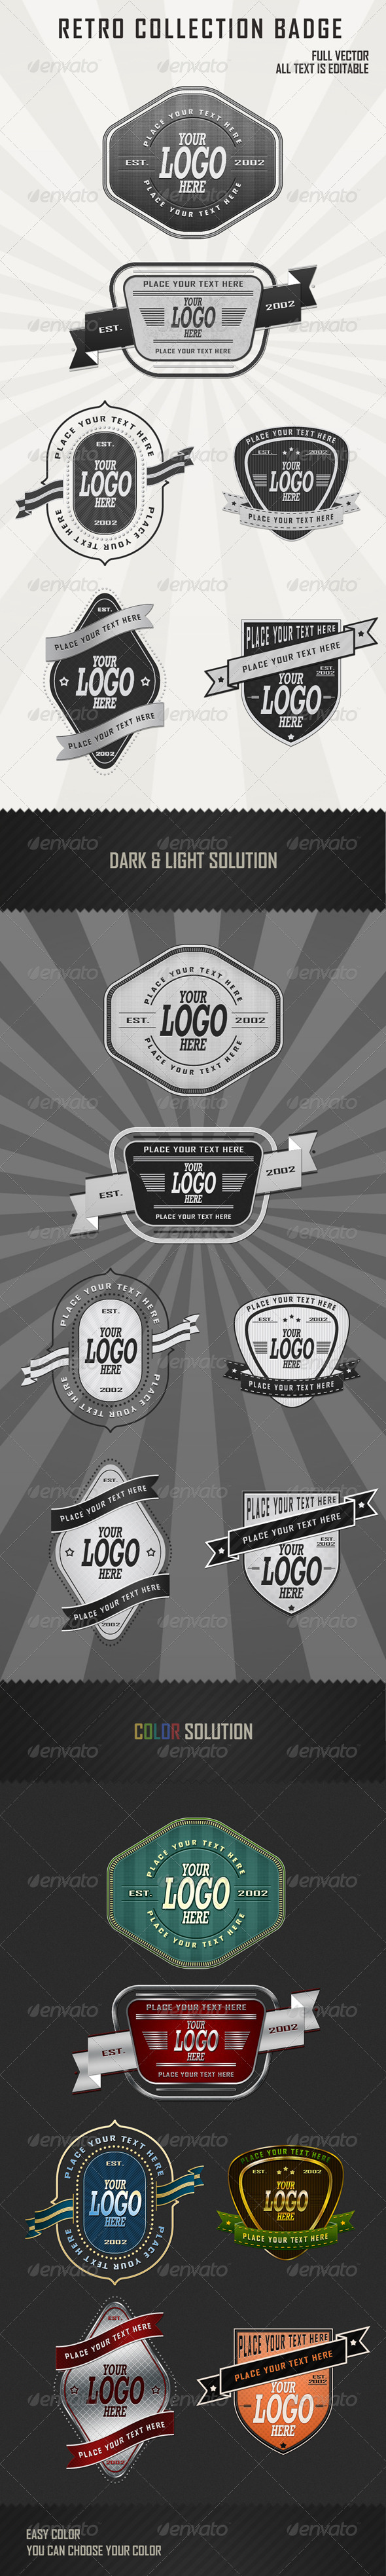 Graphic River Retro Badges Collection vol2 Web Elements -  Badges & Stickers 557740